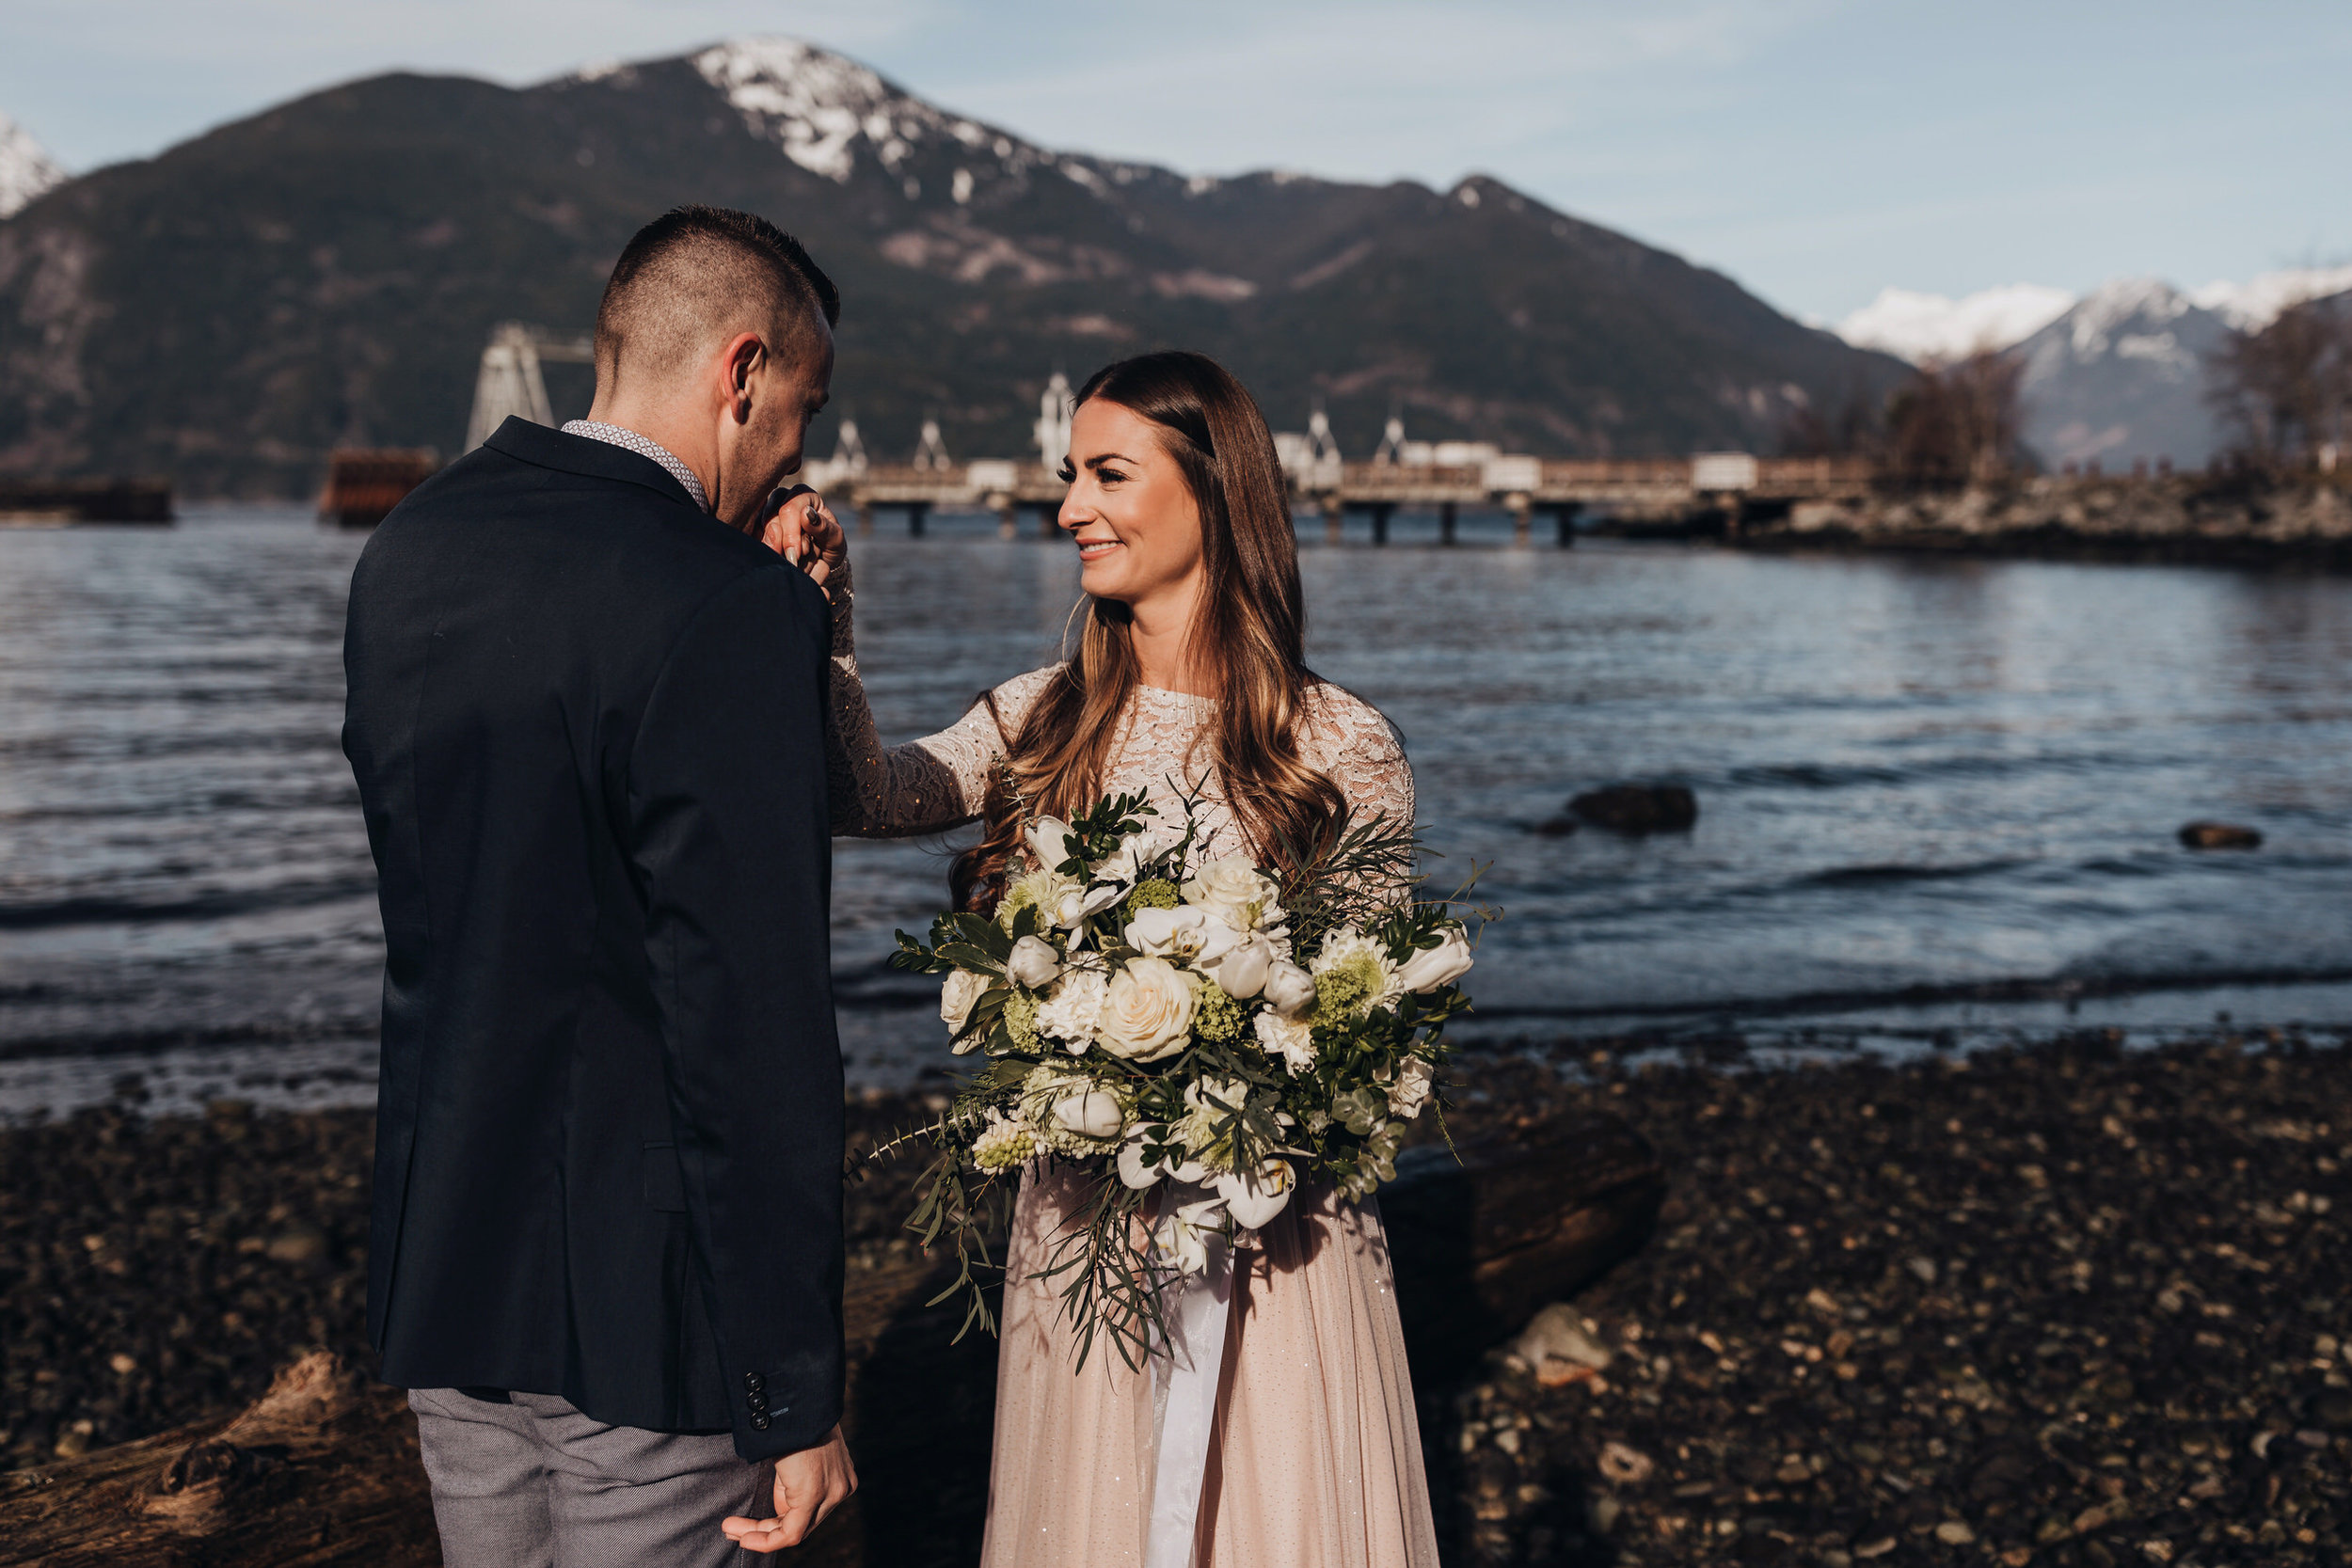 Squamish Engagement Photos - Porteau Cove Engagement Photos - Sunshine Coast Wedding Photographer - Vancouver Wedding Photographer - Squamish Wedding Photographer143.JPG